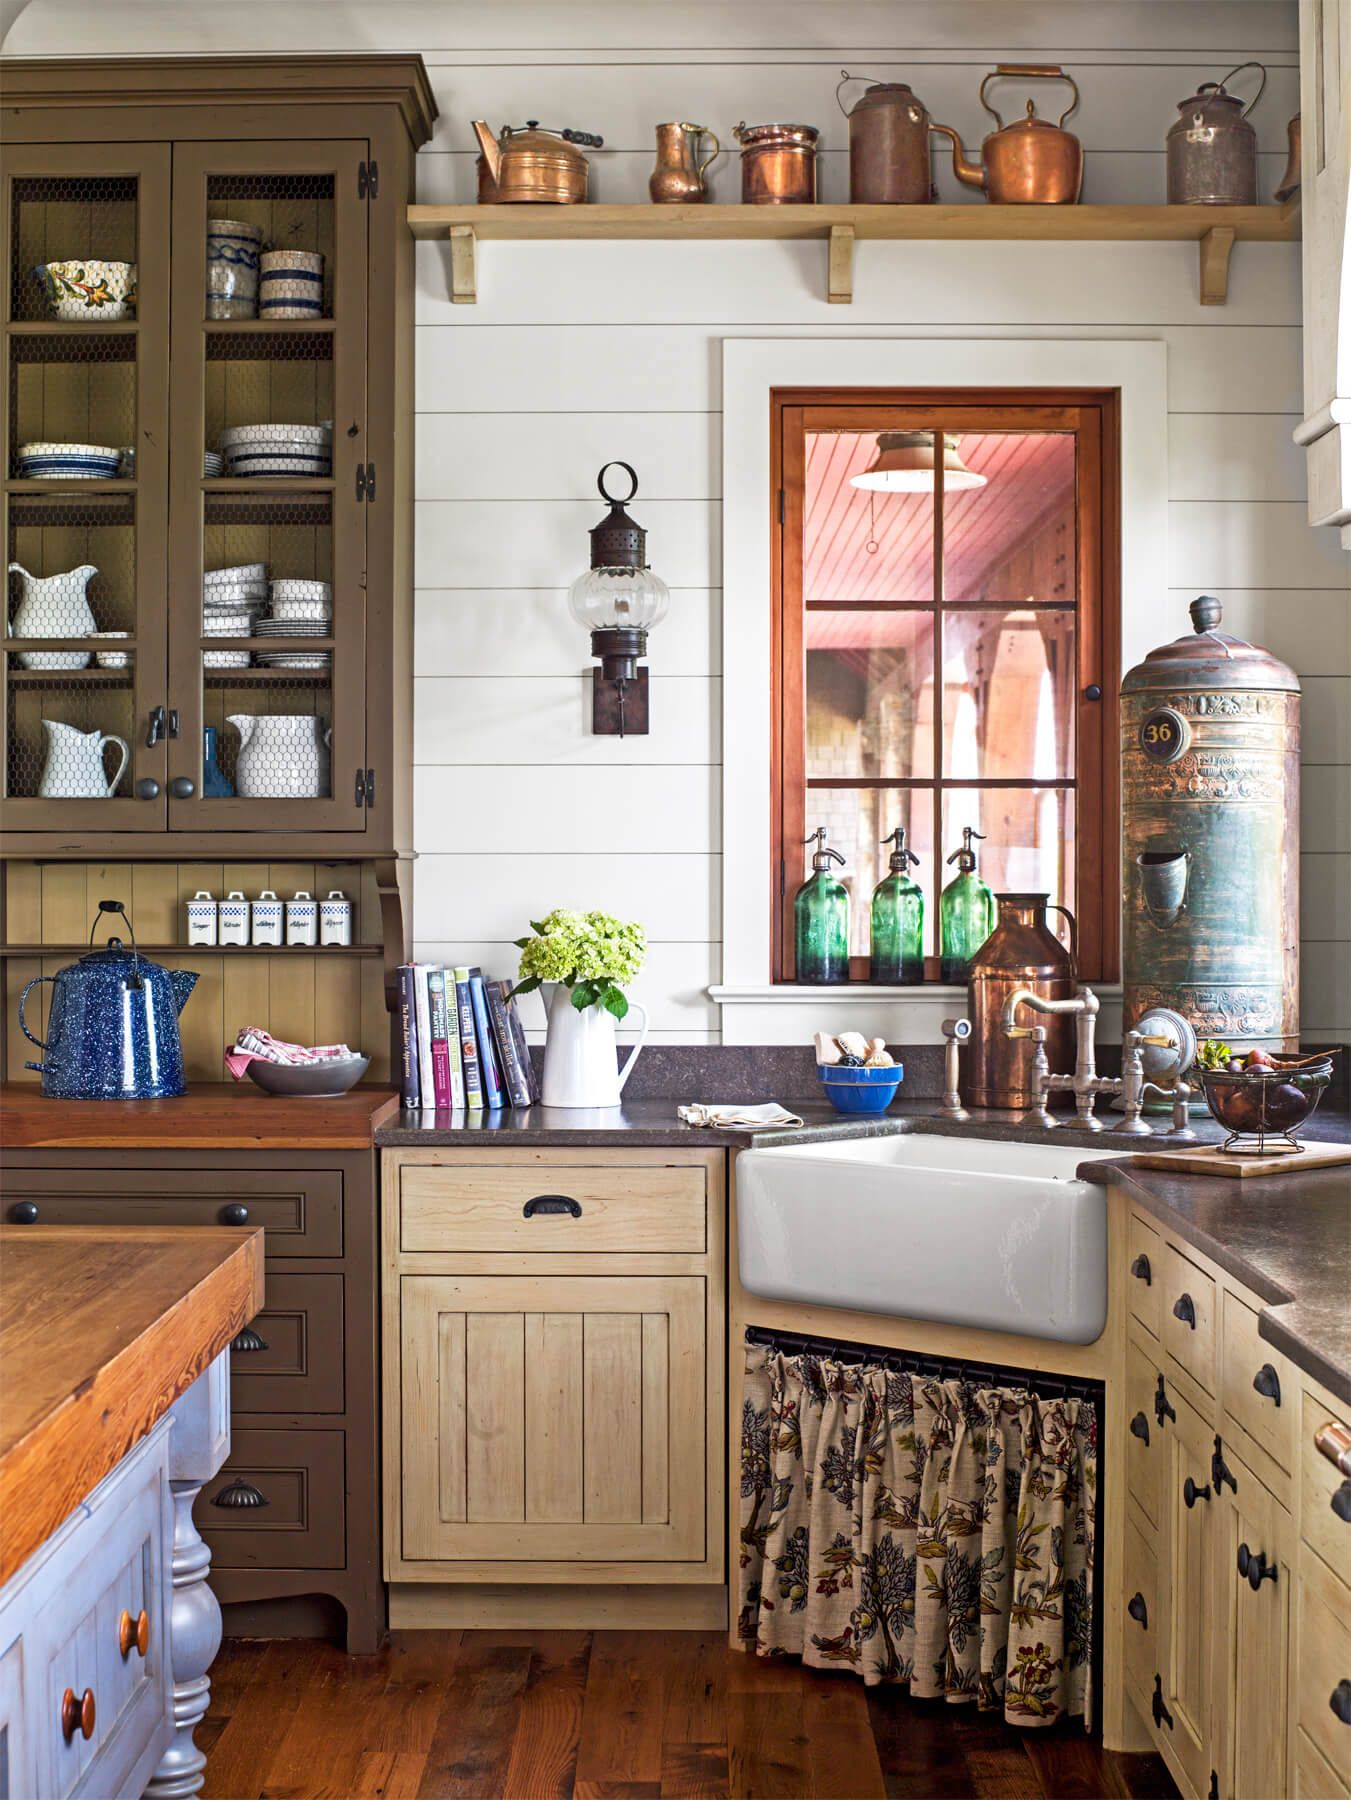 34 Vintage Kitchen Design and Decor Ideas that Stand the Test of